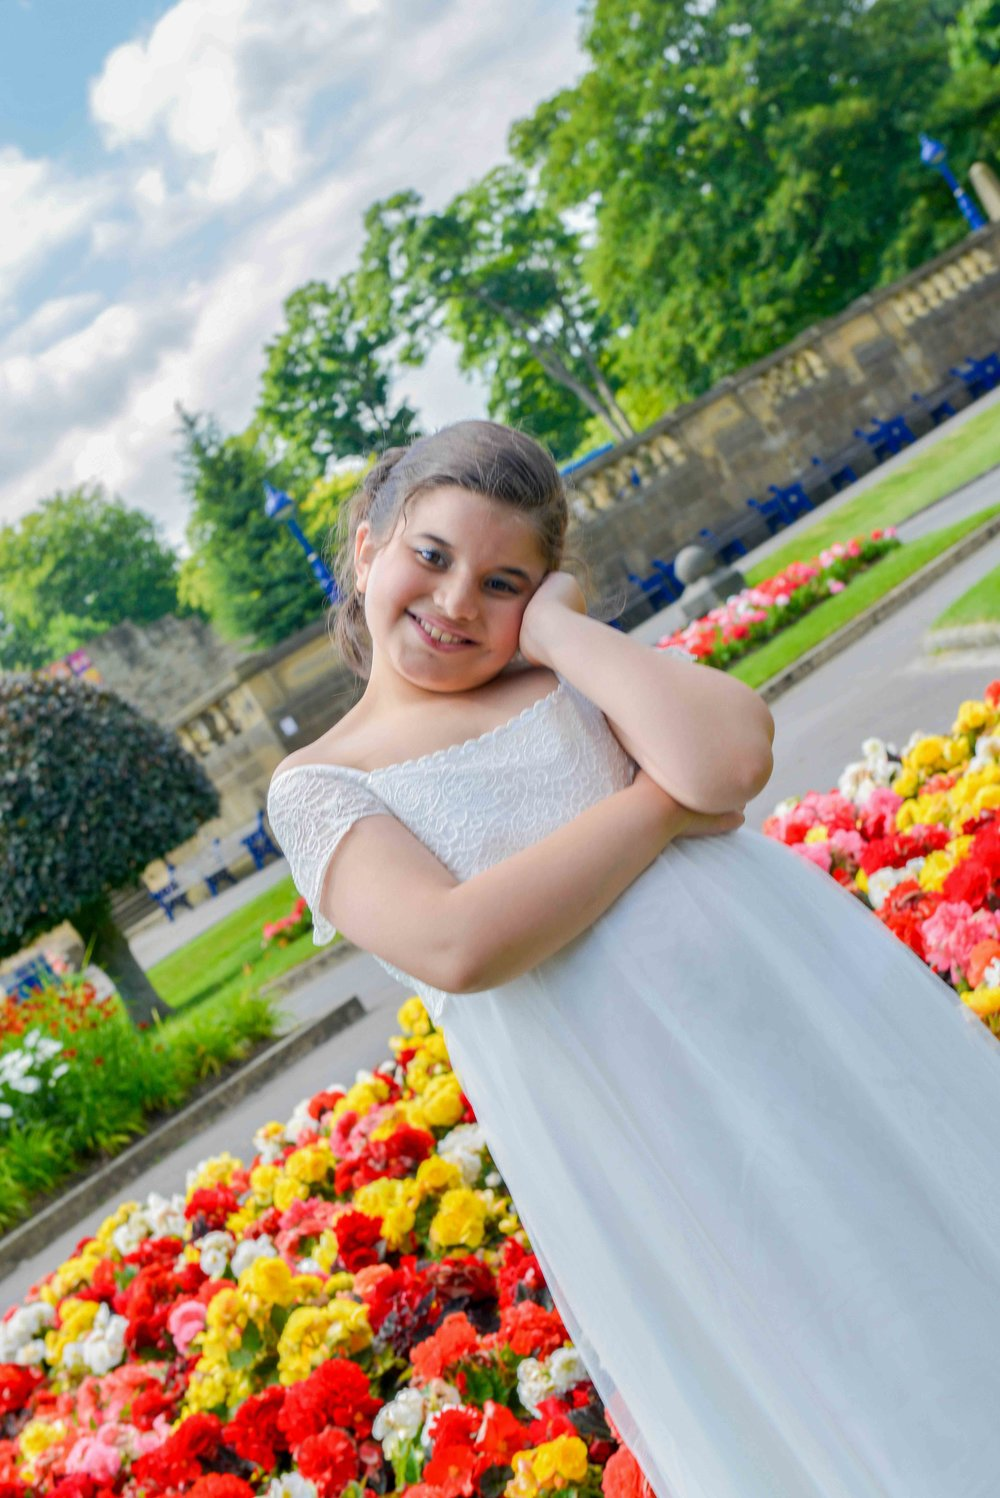 Ashley 2016, Shy B Photography location shoot, Lister Park, Bradford, West Yorkshire